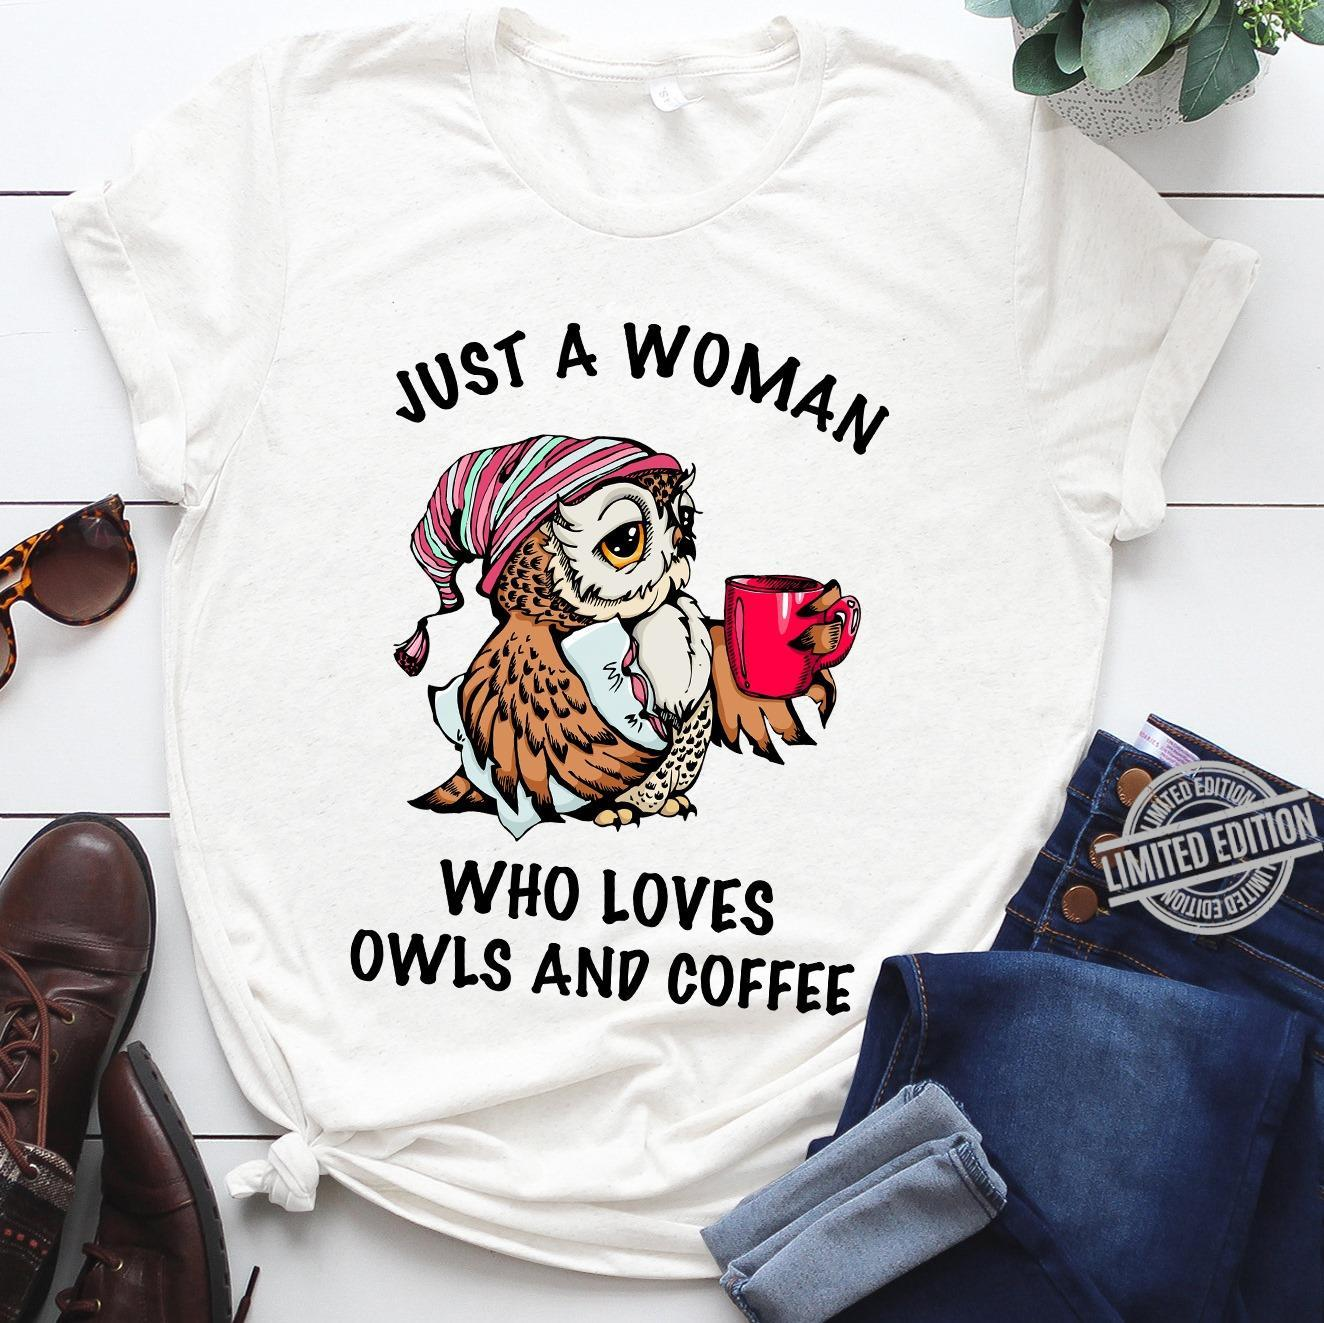 Just A Woman Who Loves Owls And Coffee Shirt